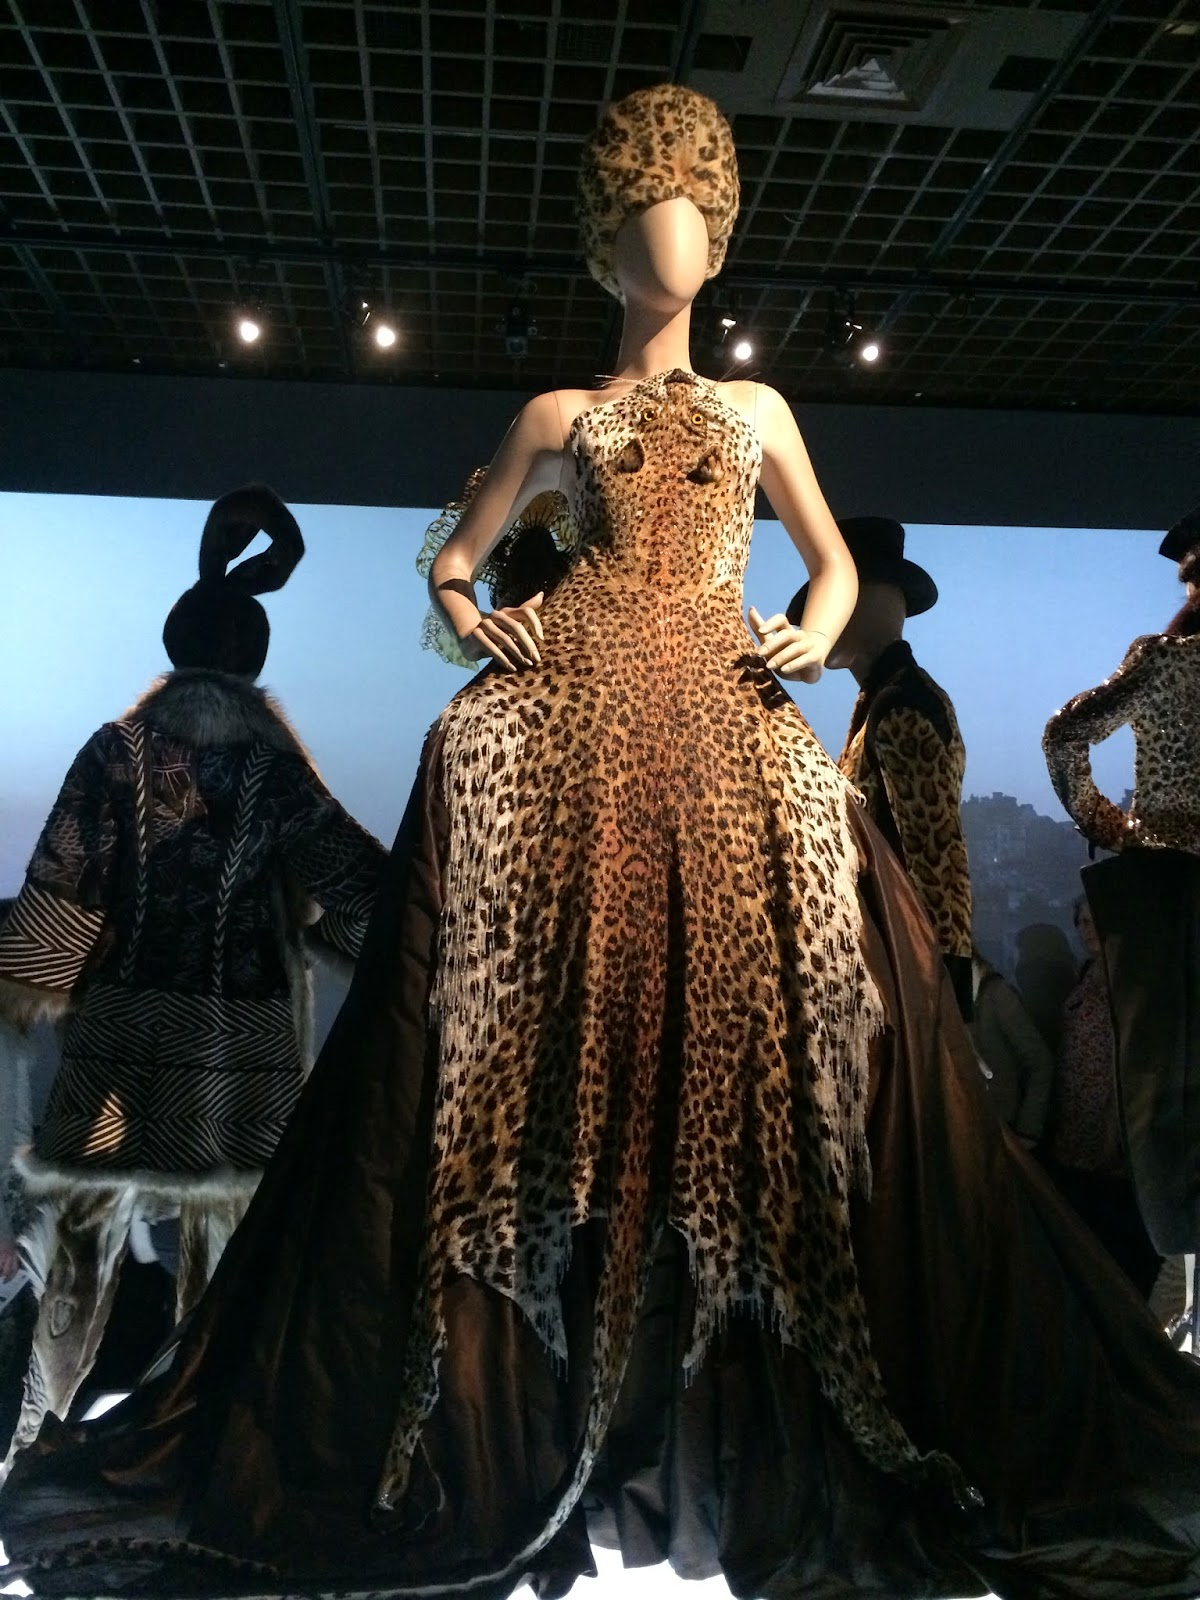 Animal print dress by Jean Paul Gaultier, Le Grand Palais, Paris